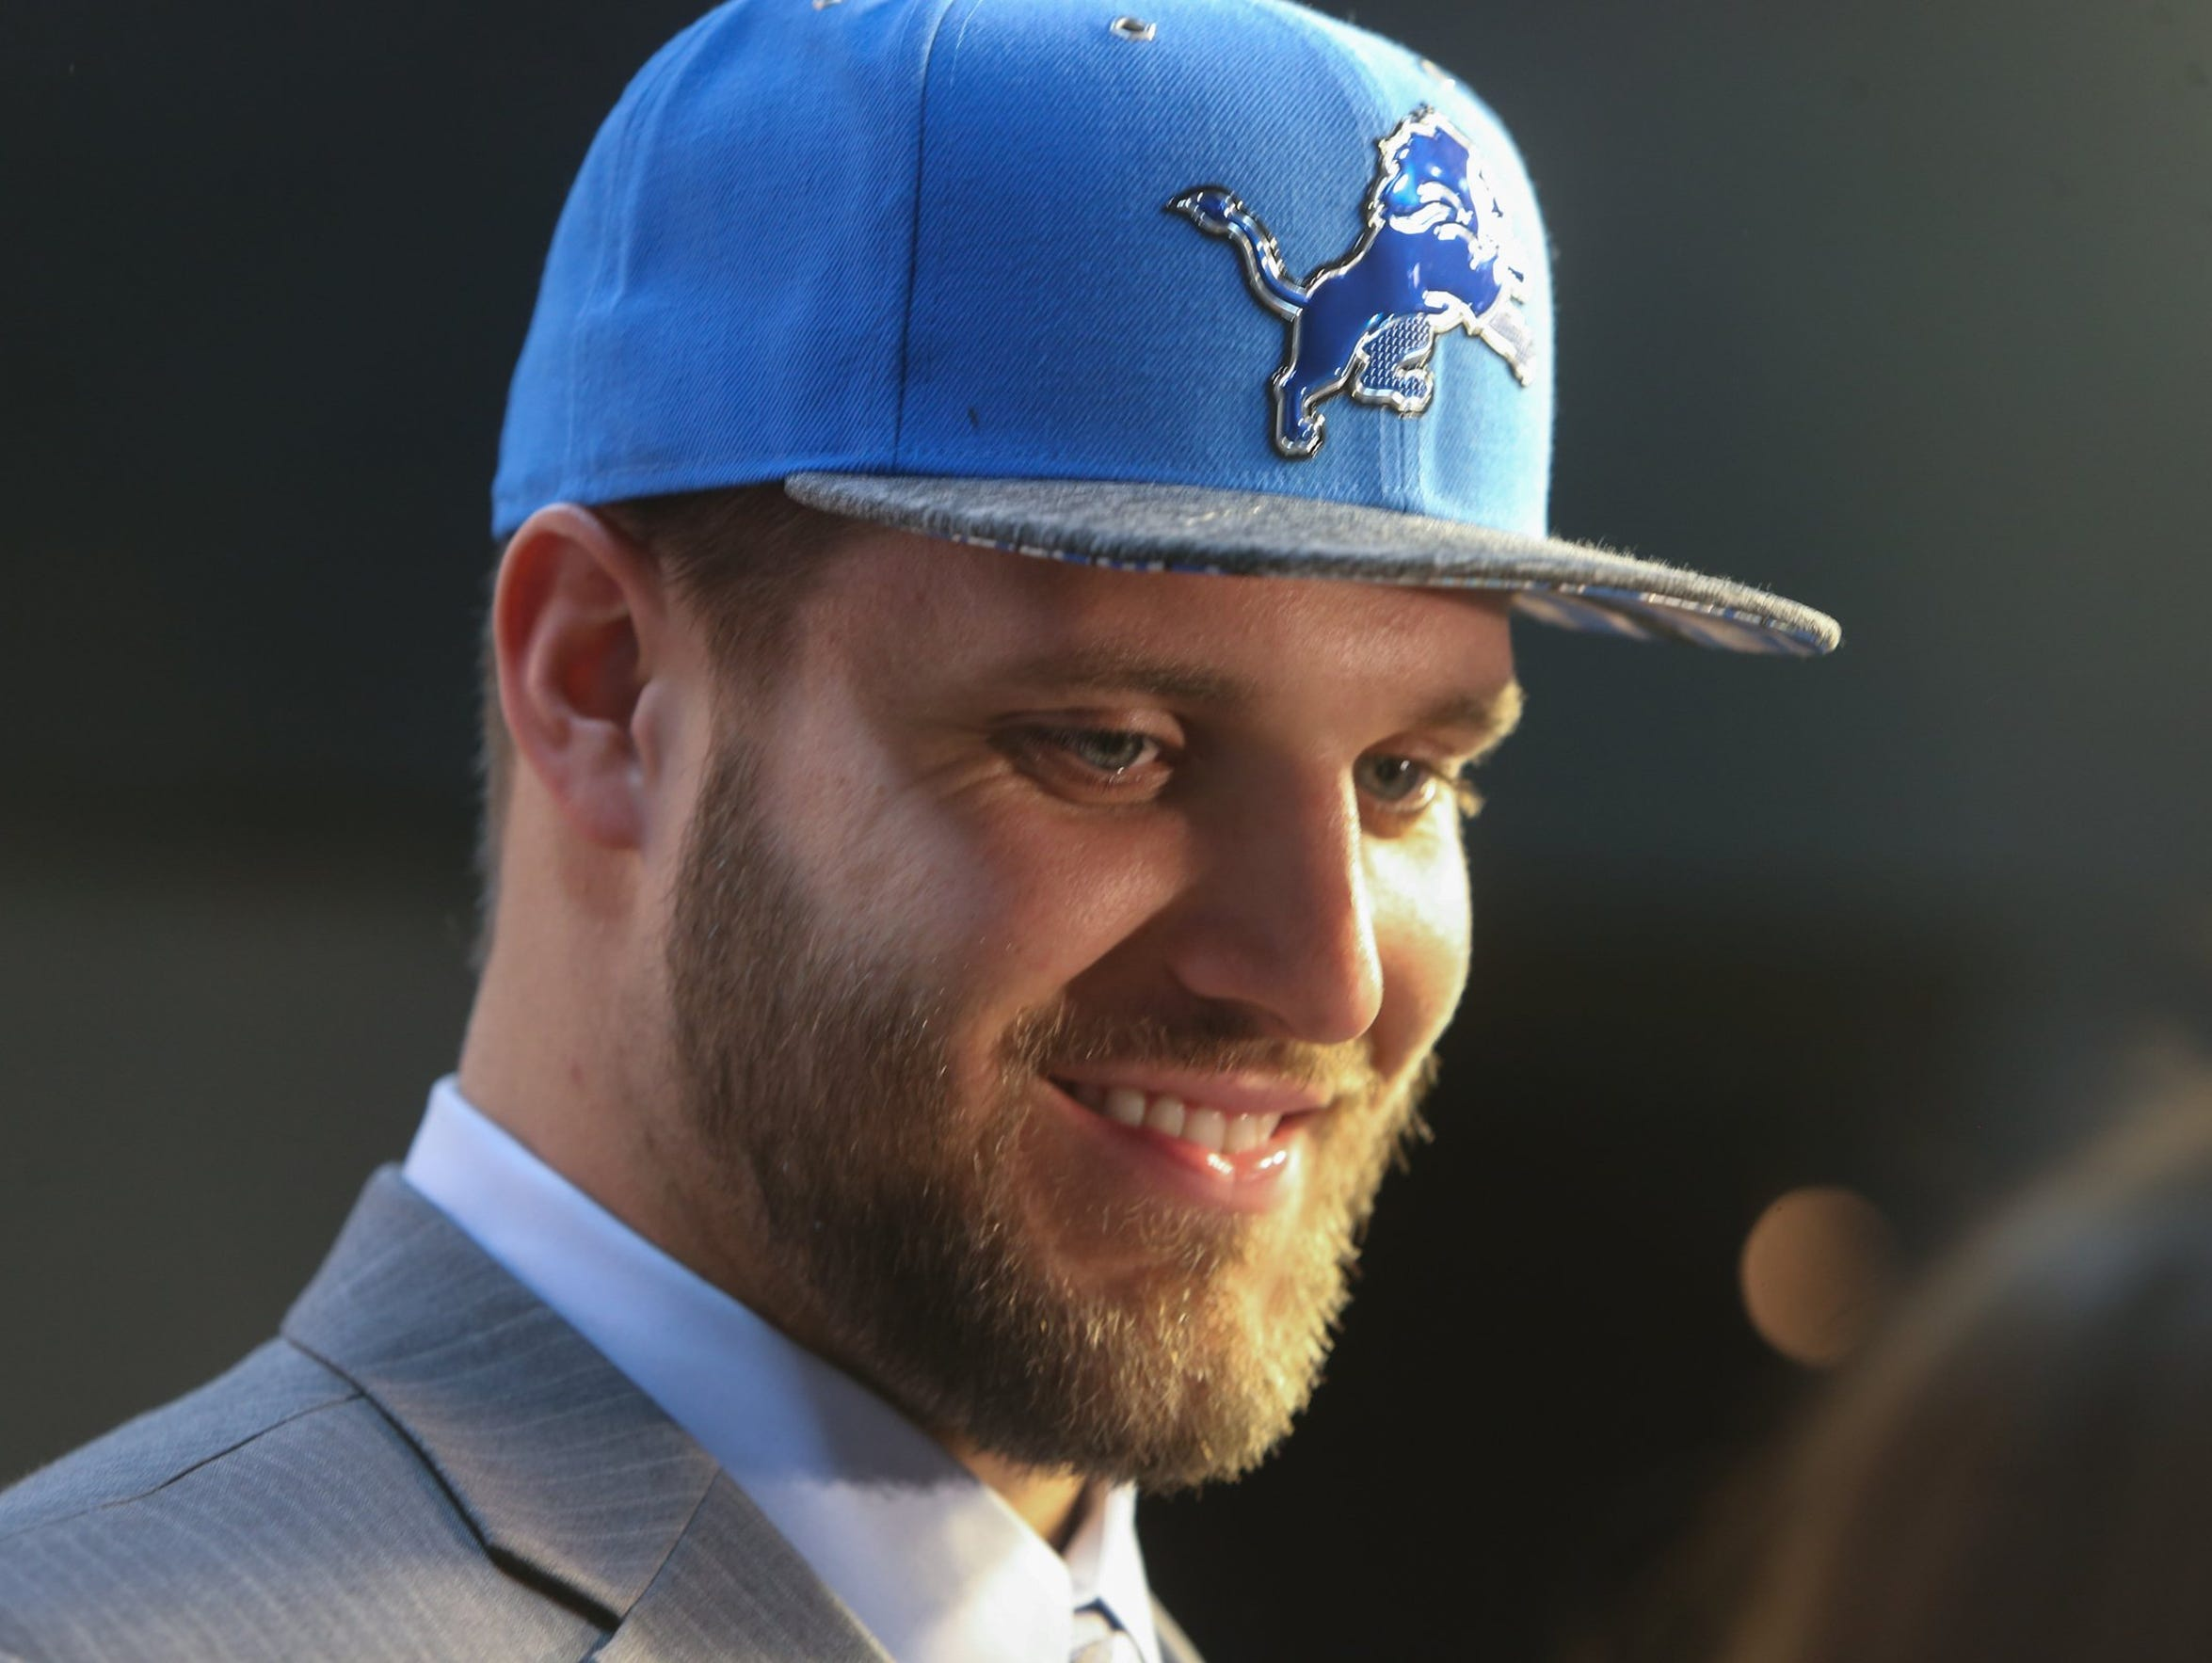 Taylor Decker New Lion inspires leads protects